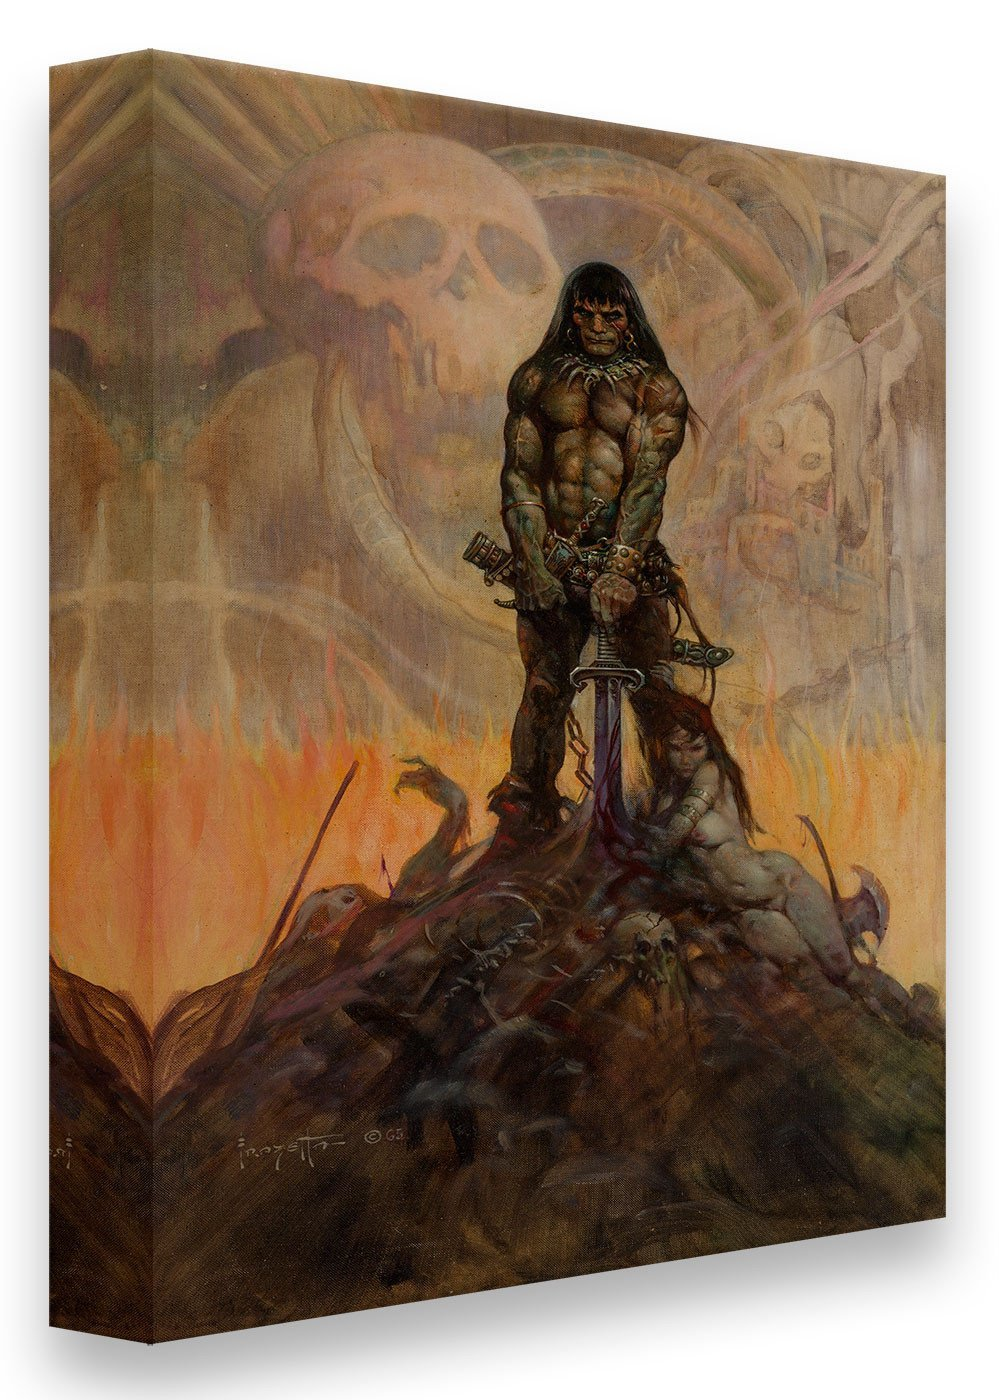 FrazettaGirls Art Print Canvas / Stretched on wooden bar / 16x20 Conan The Barbarian Print